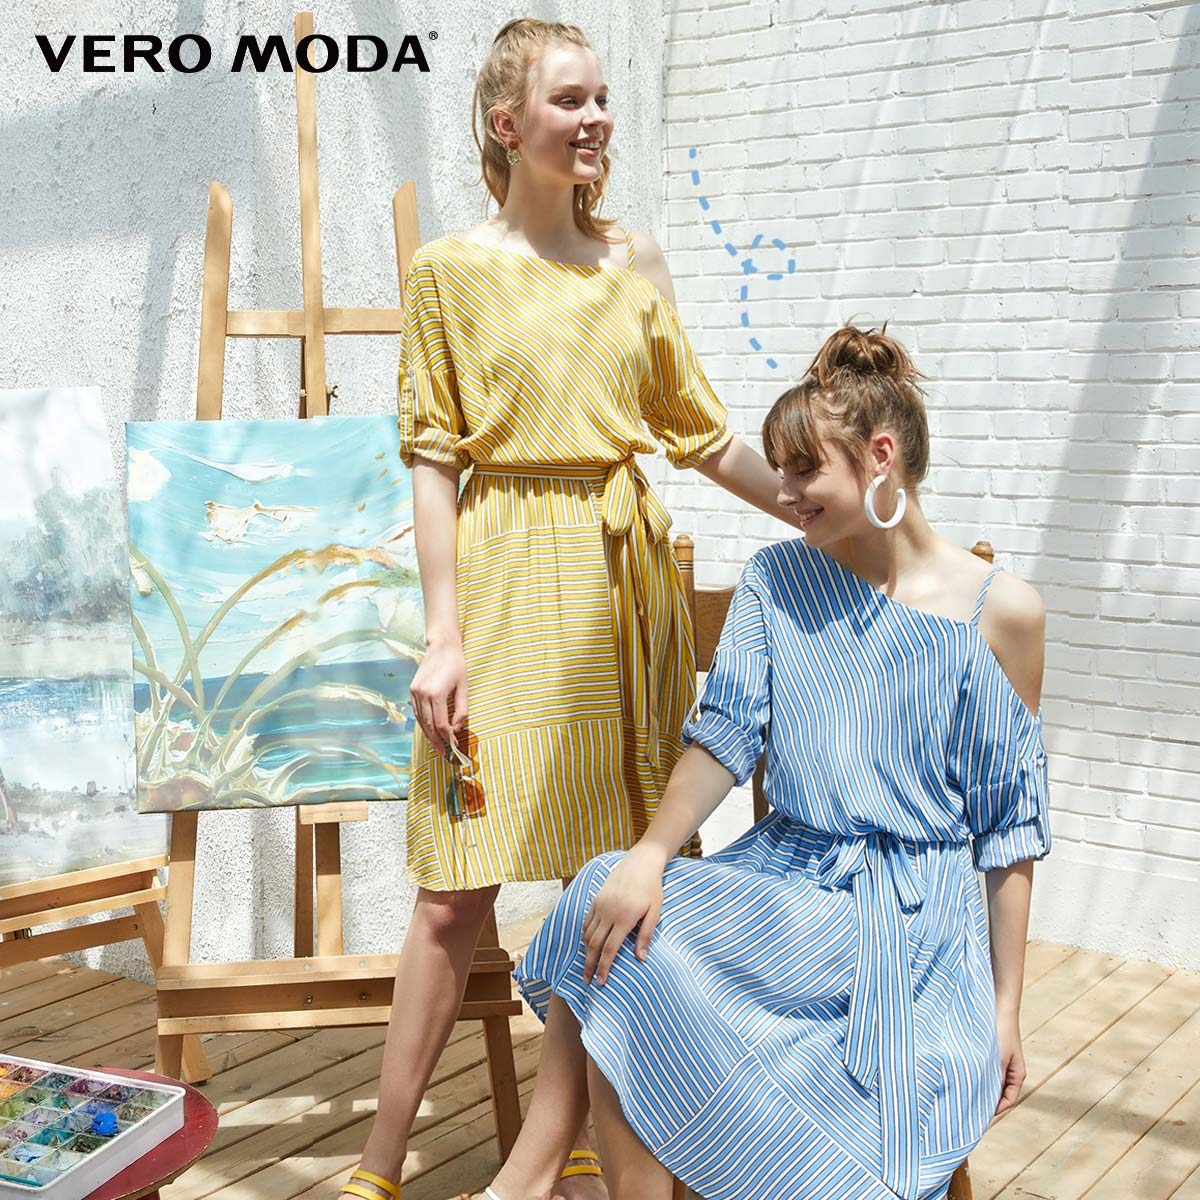 Vero Moda Women's Asymmetrical Shoulders 3/4 Sleeves High-rise Dress | 31927C508